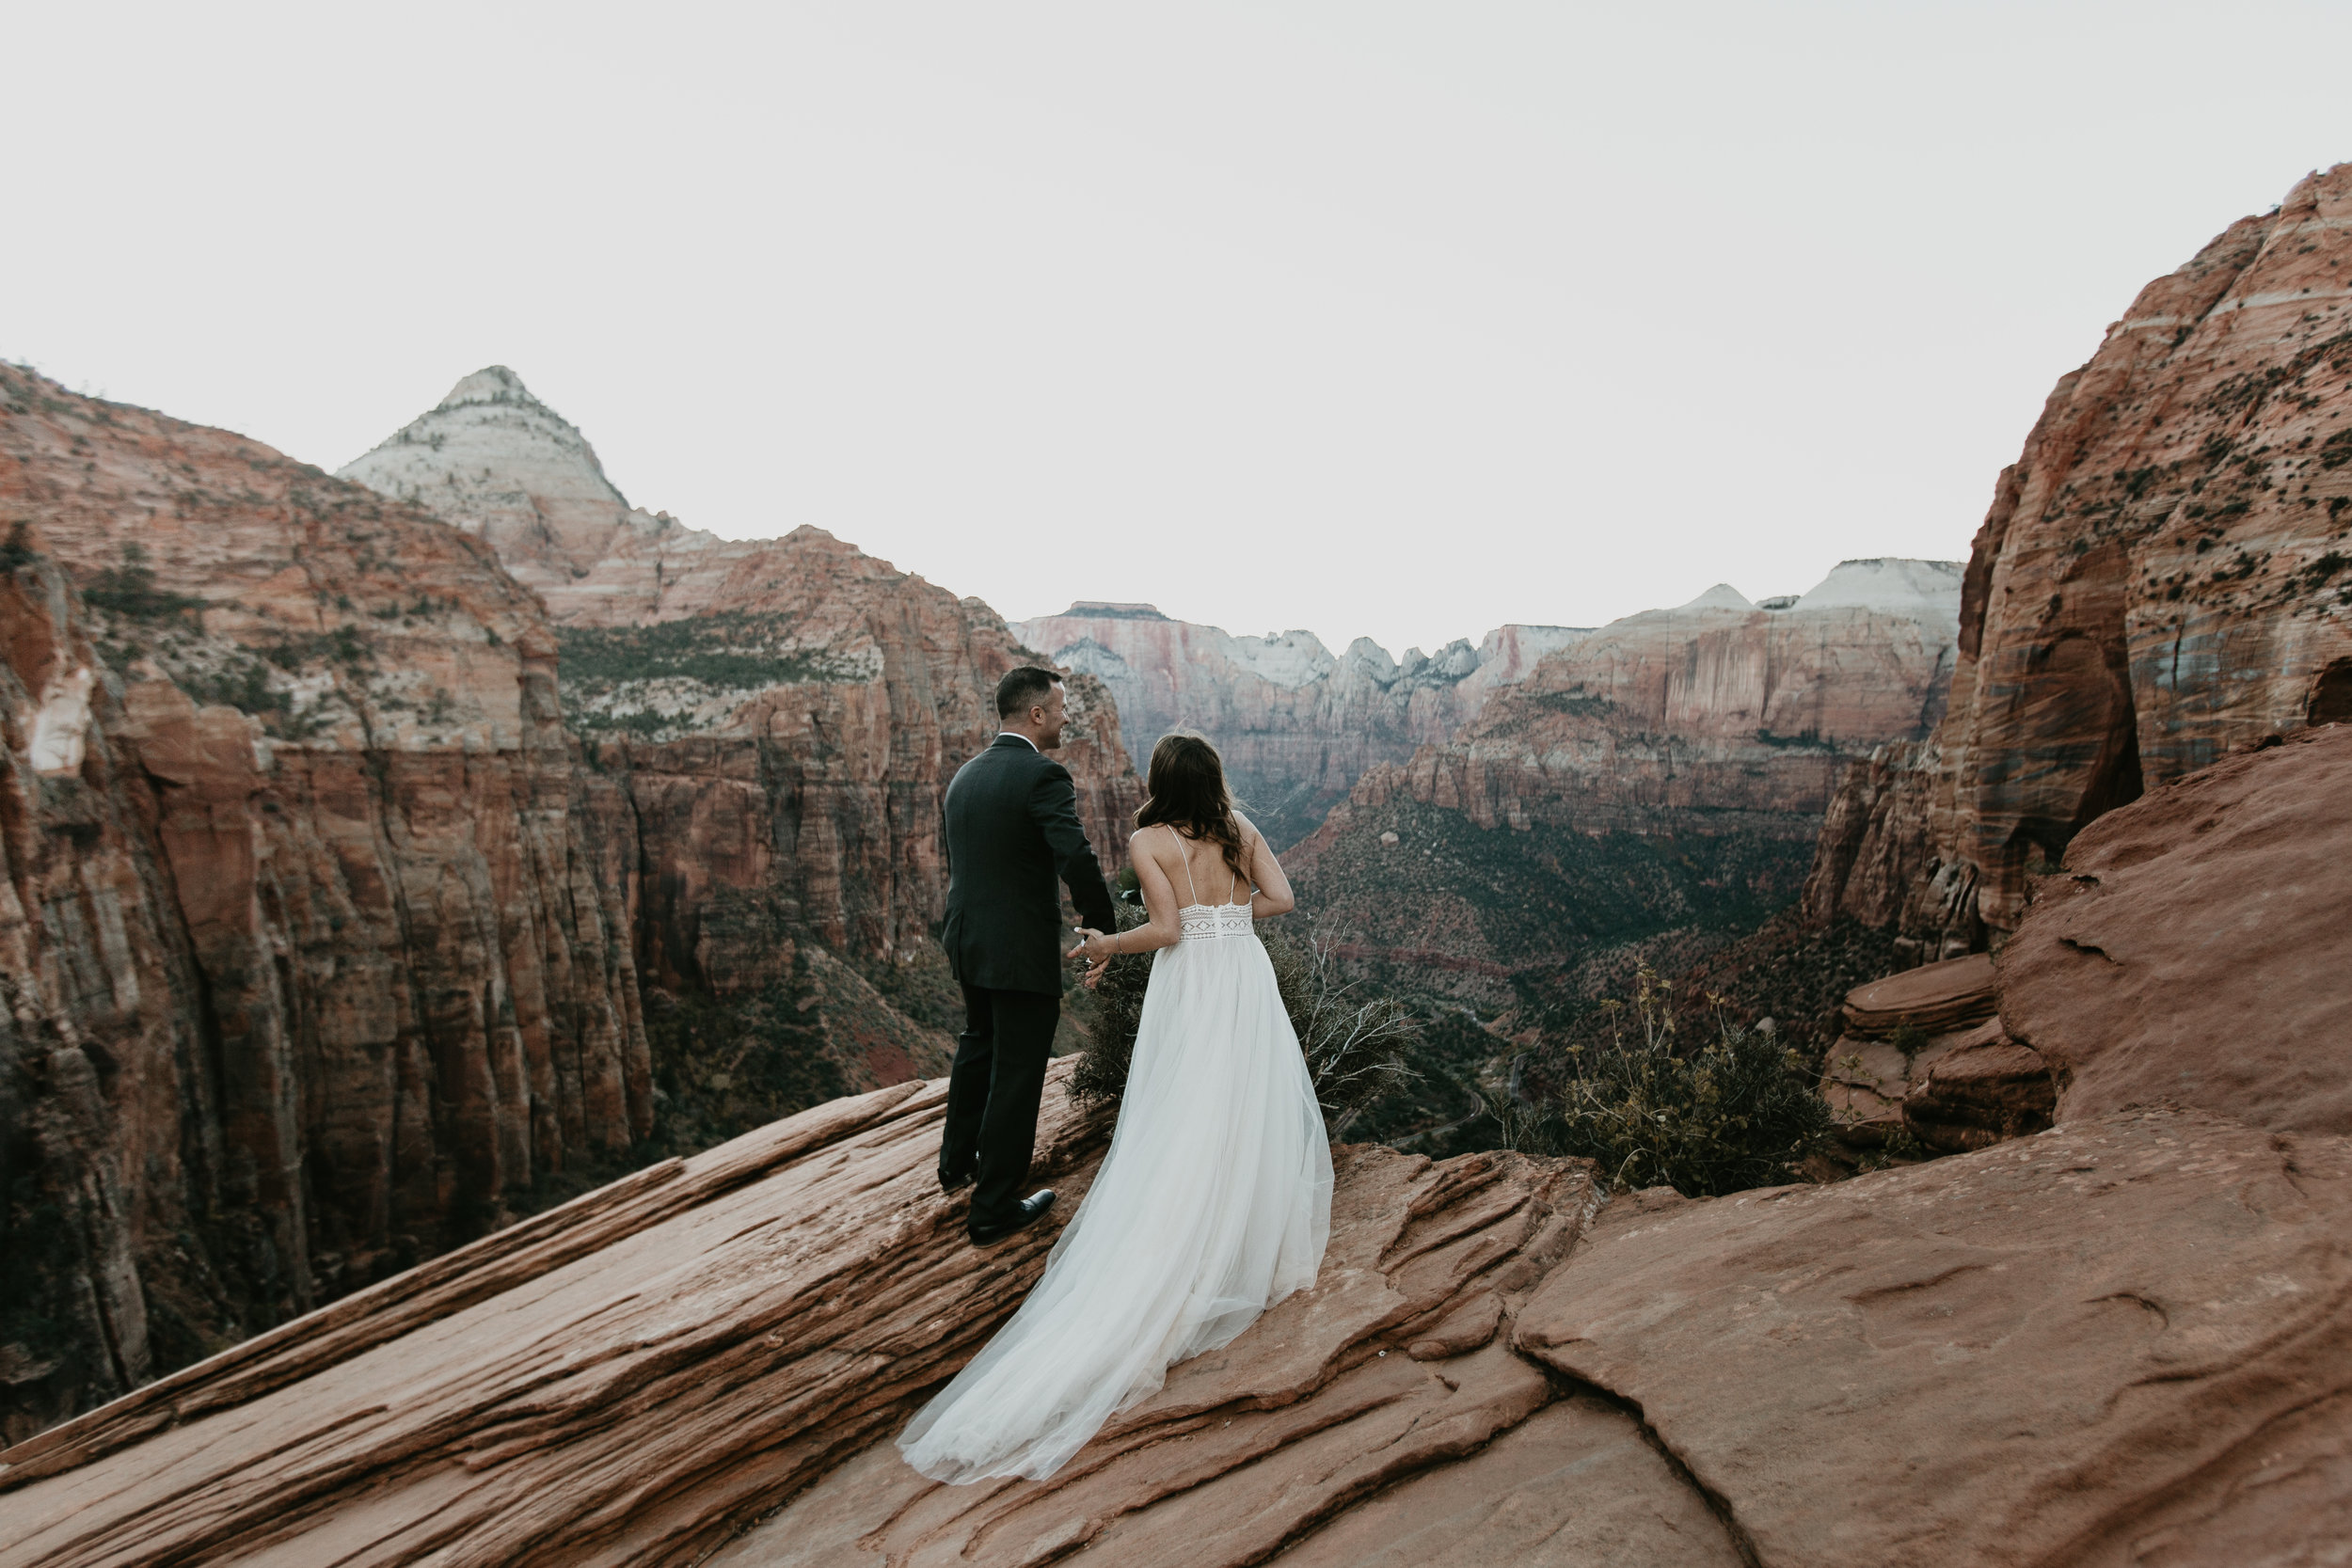 nicole-daacke-photography-zion-national-park-elopement-photographer-canyon-overlook-trail-elope-hiking-adventure-wedding-photos-fall-utah-red-rock-canyon-stgeorge-eloping-photographer-76.jpg